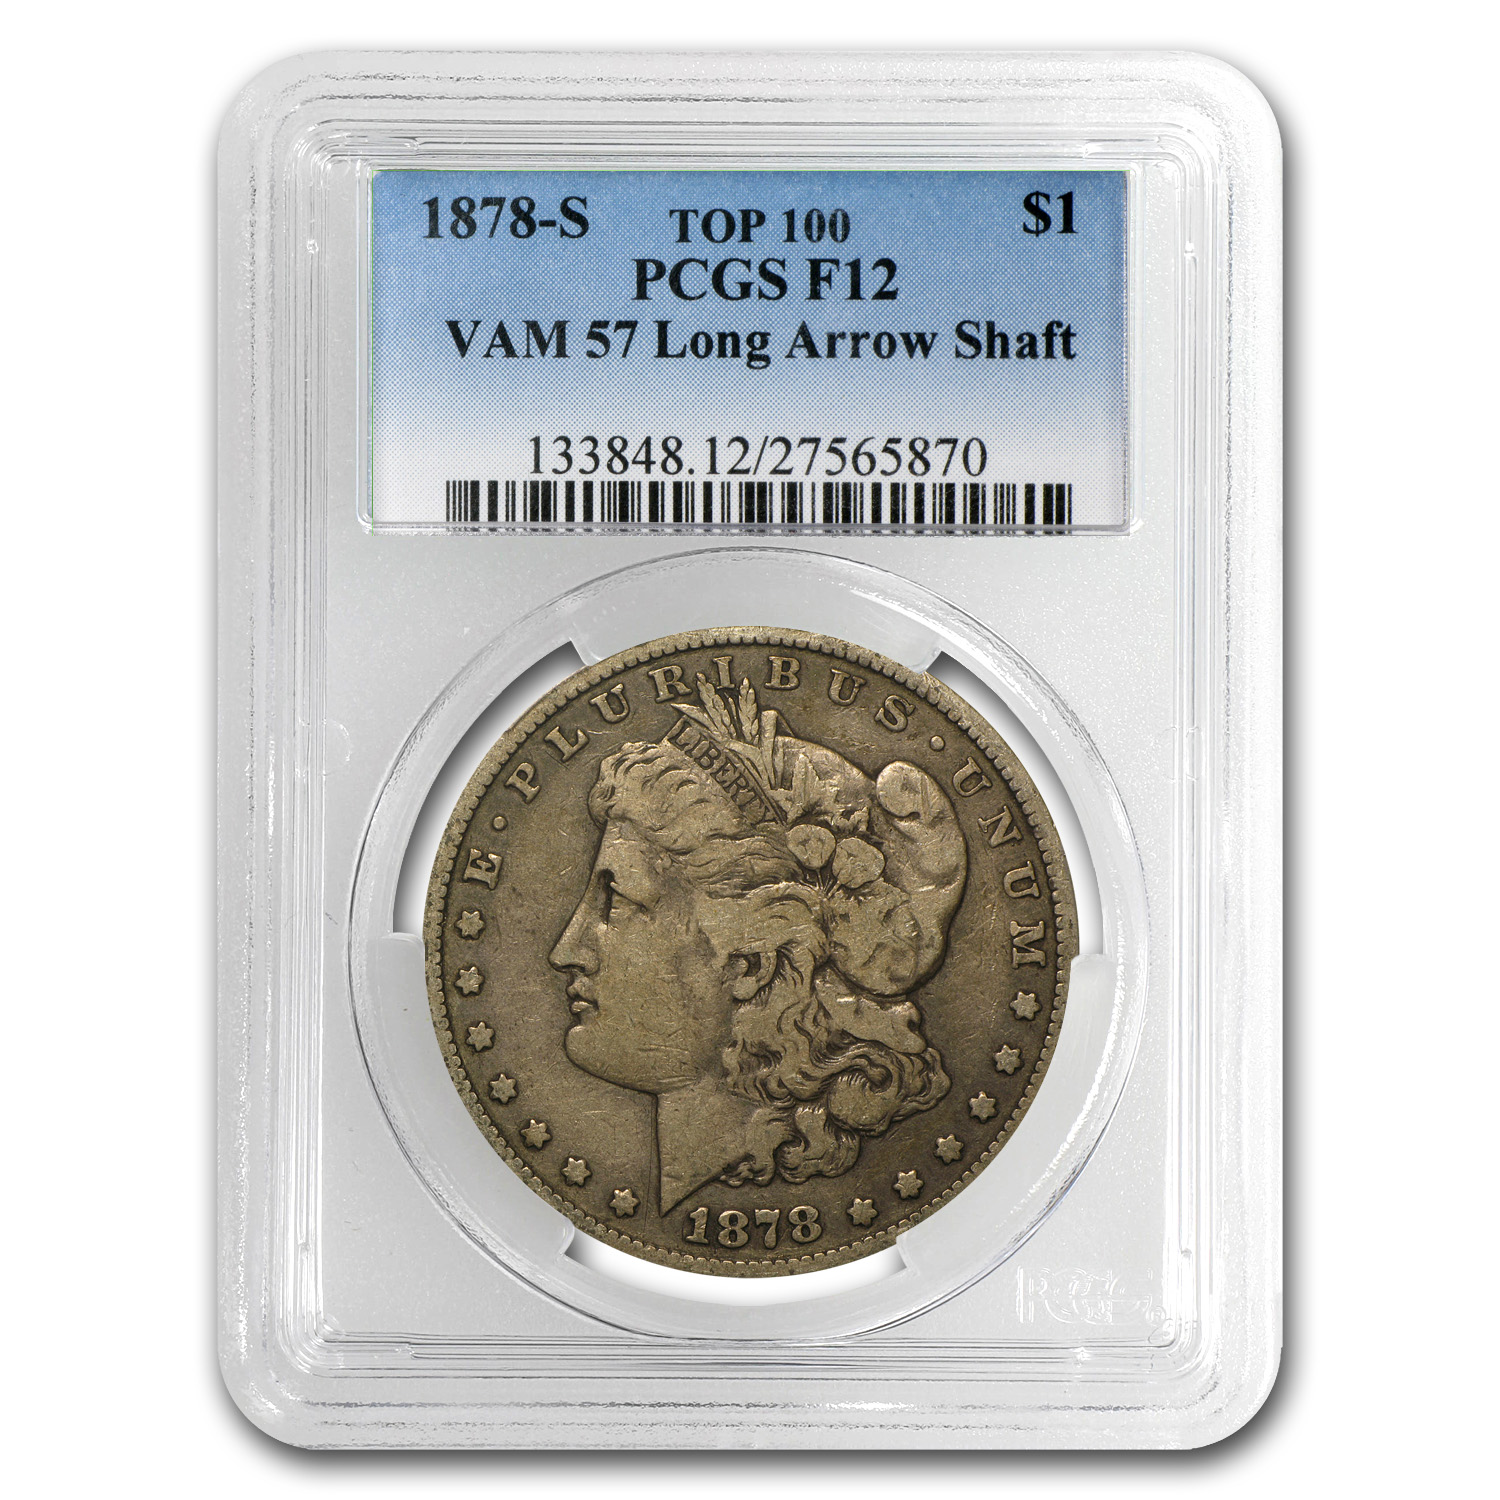 1878-S Morgan Dollar Fine-12 PCGS (VAM-57, Long Nock, Top-100)